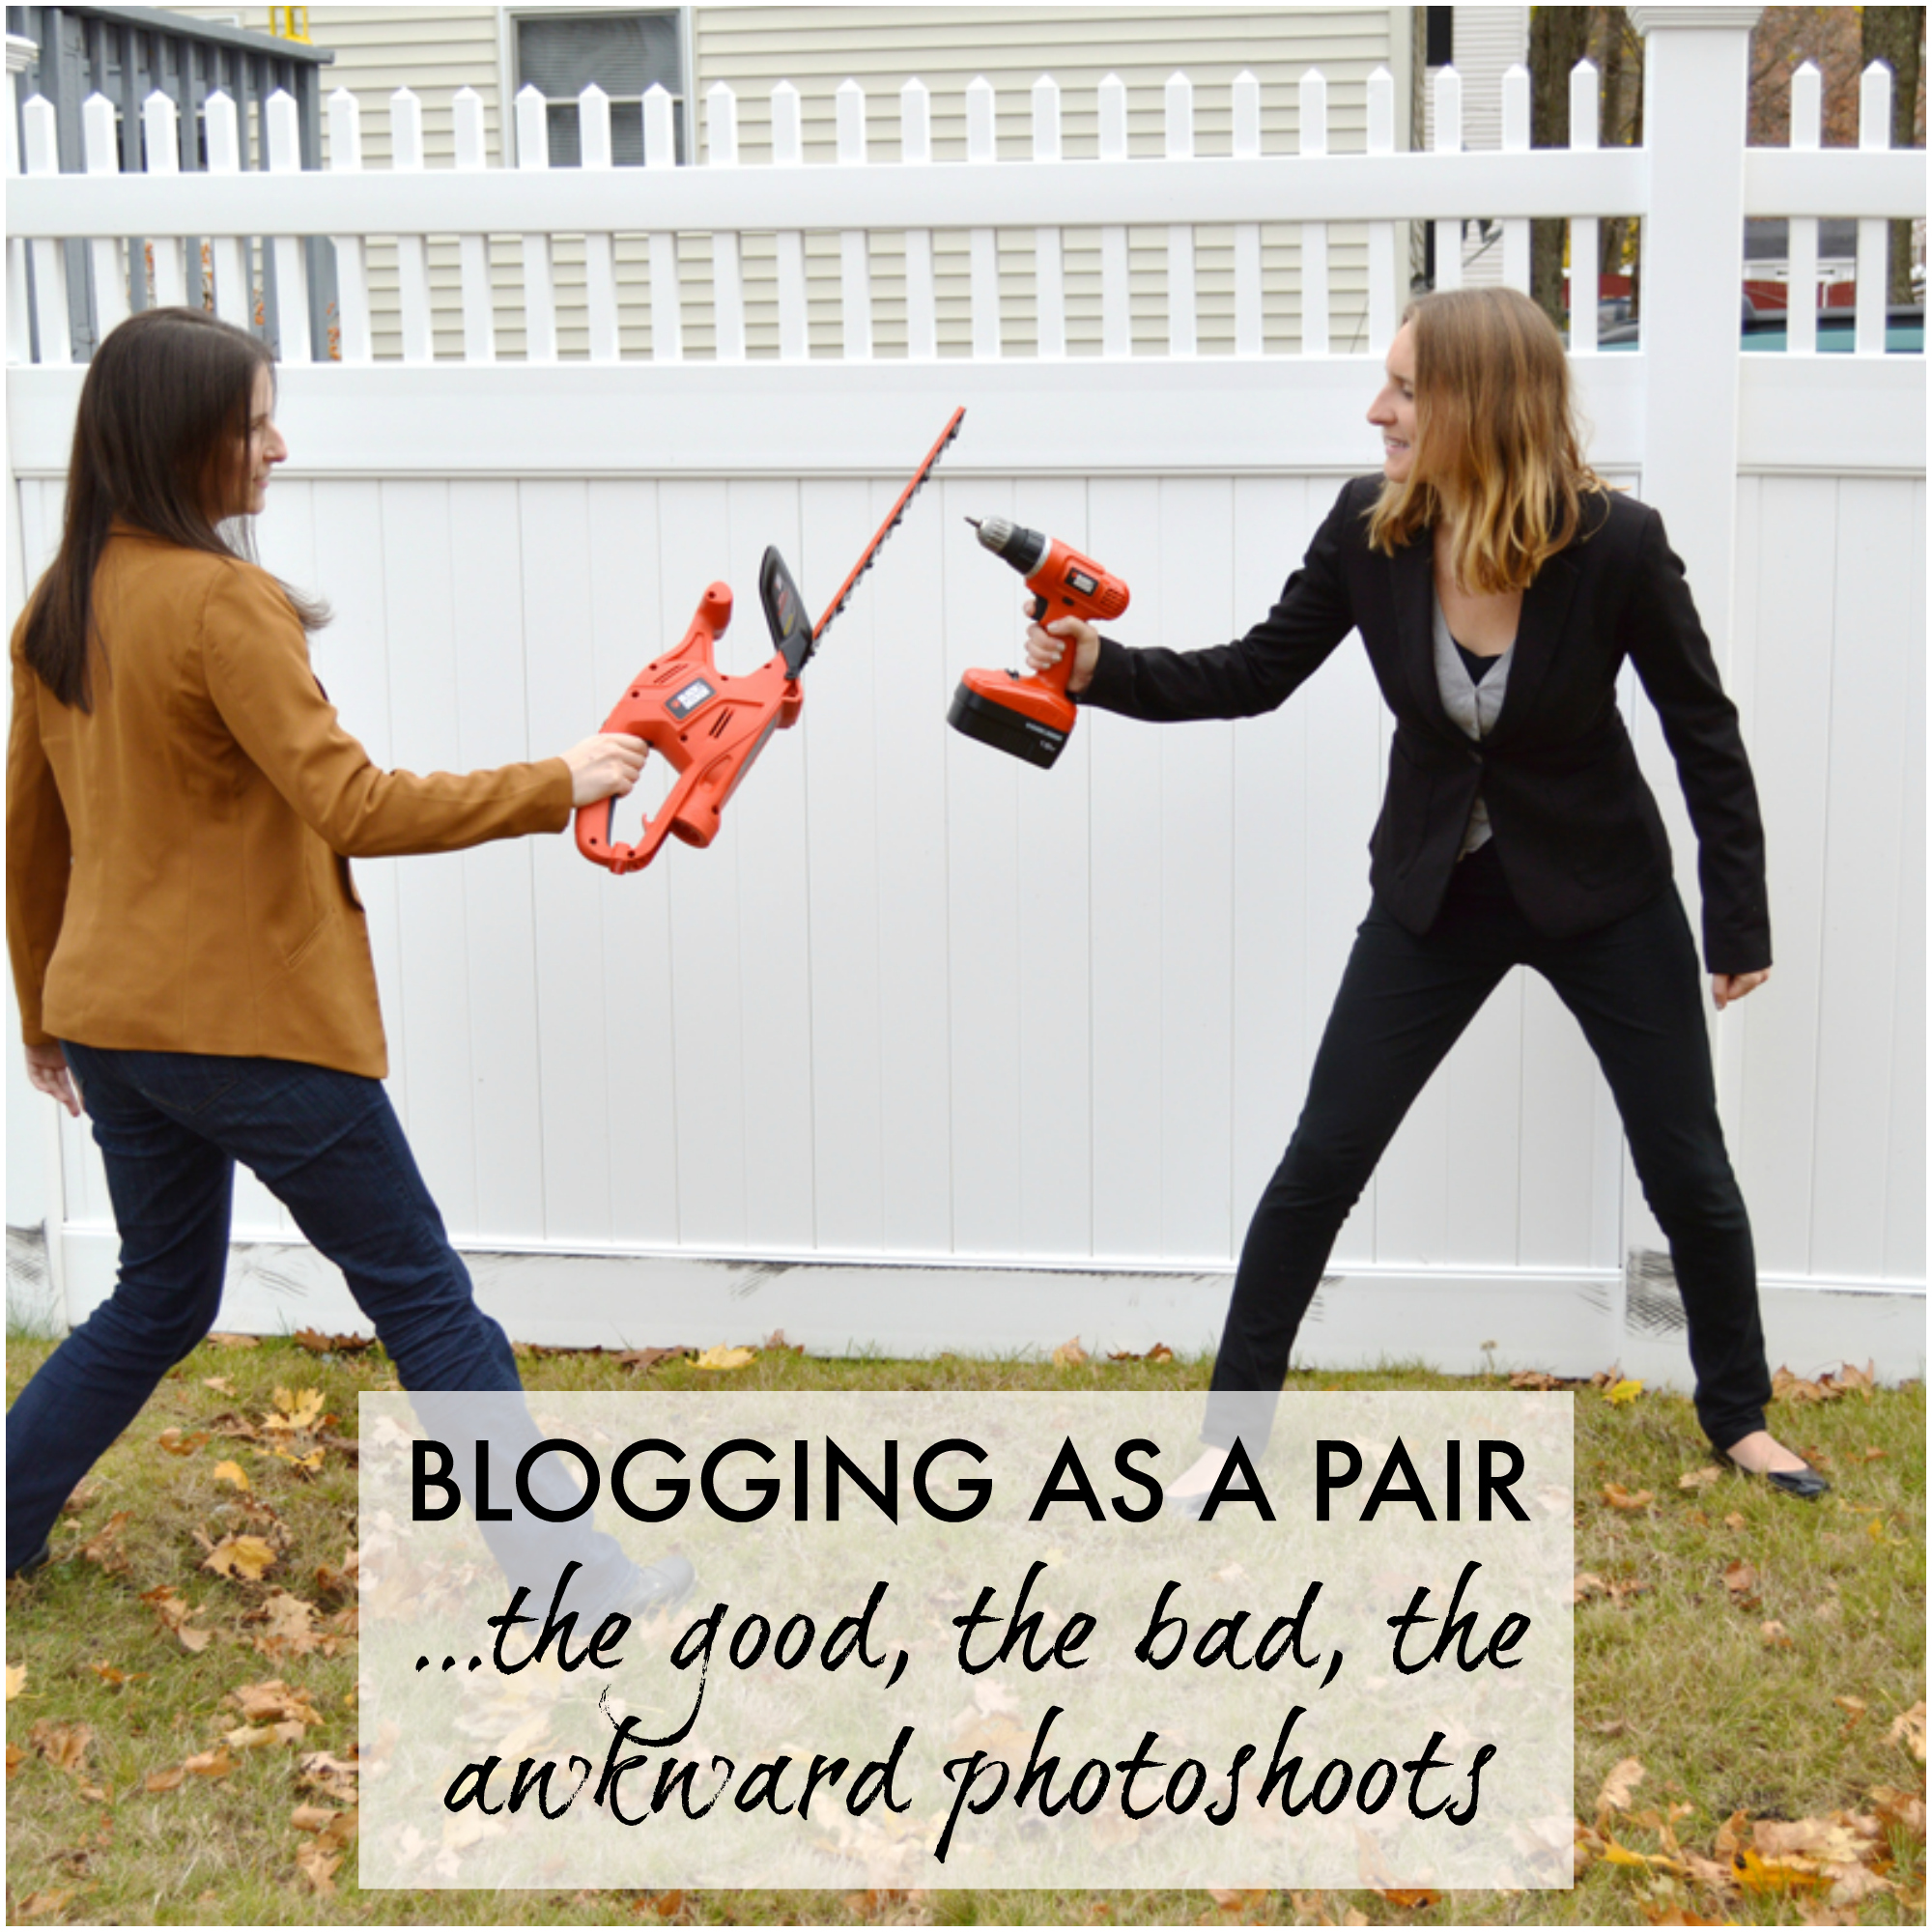 Blogging as a pair -- Plaster & Disaster